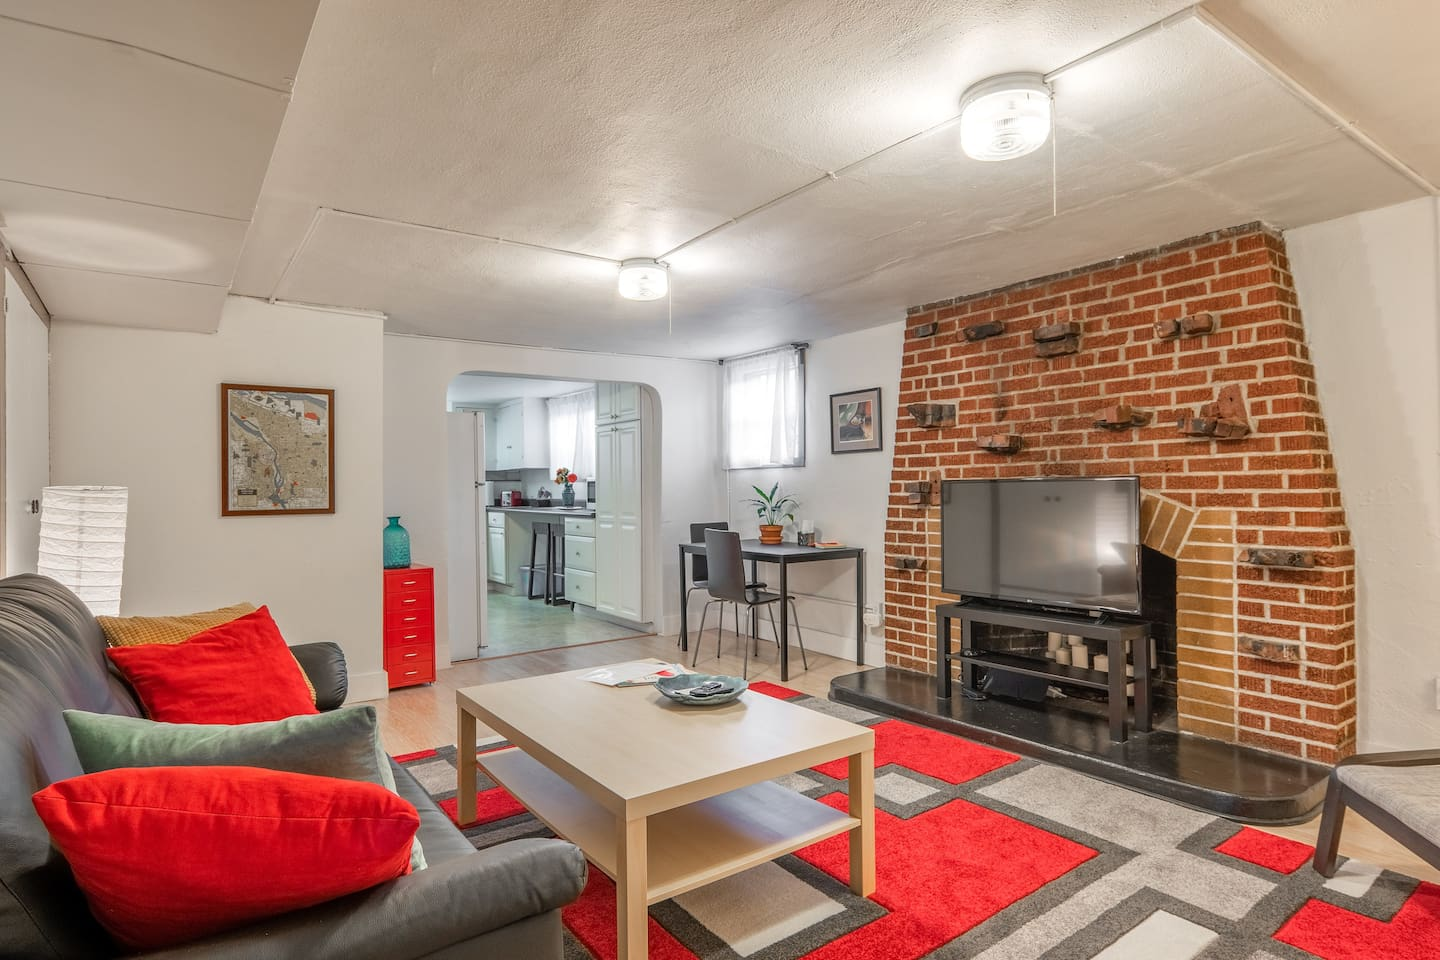 The apartment is in the lower level of a 100 year old craftsman bungalow and has some classic features, but is furnished with crisp, colorful, urban style.